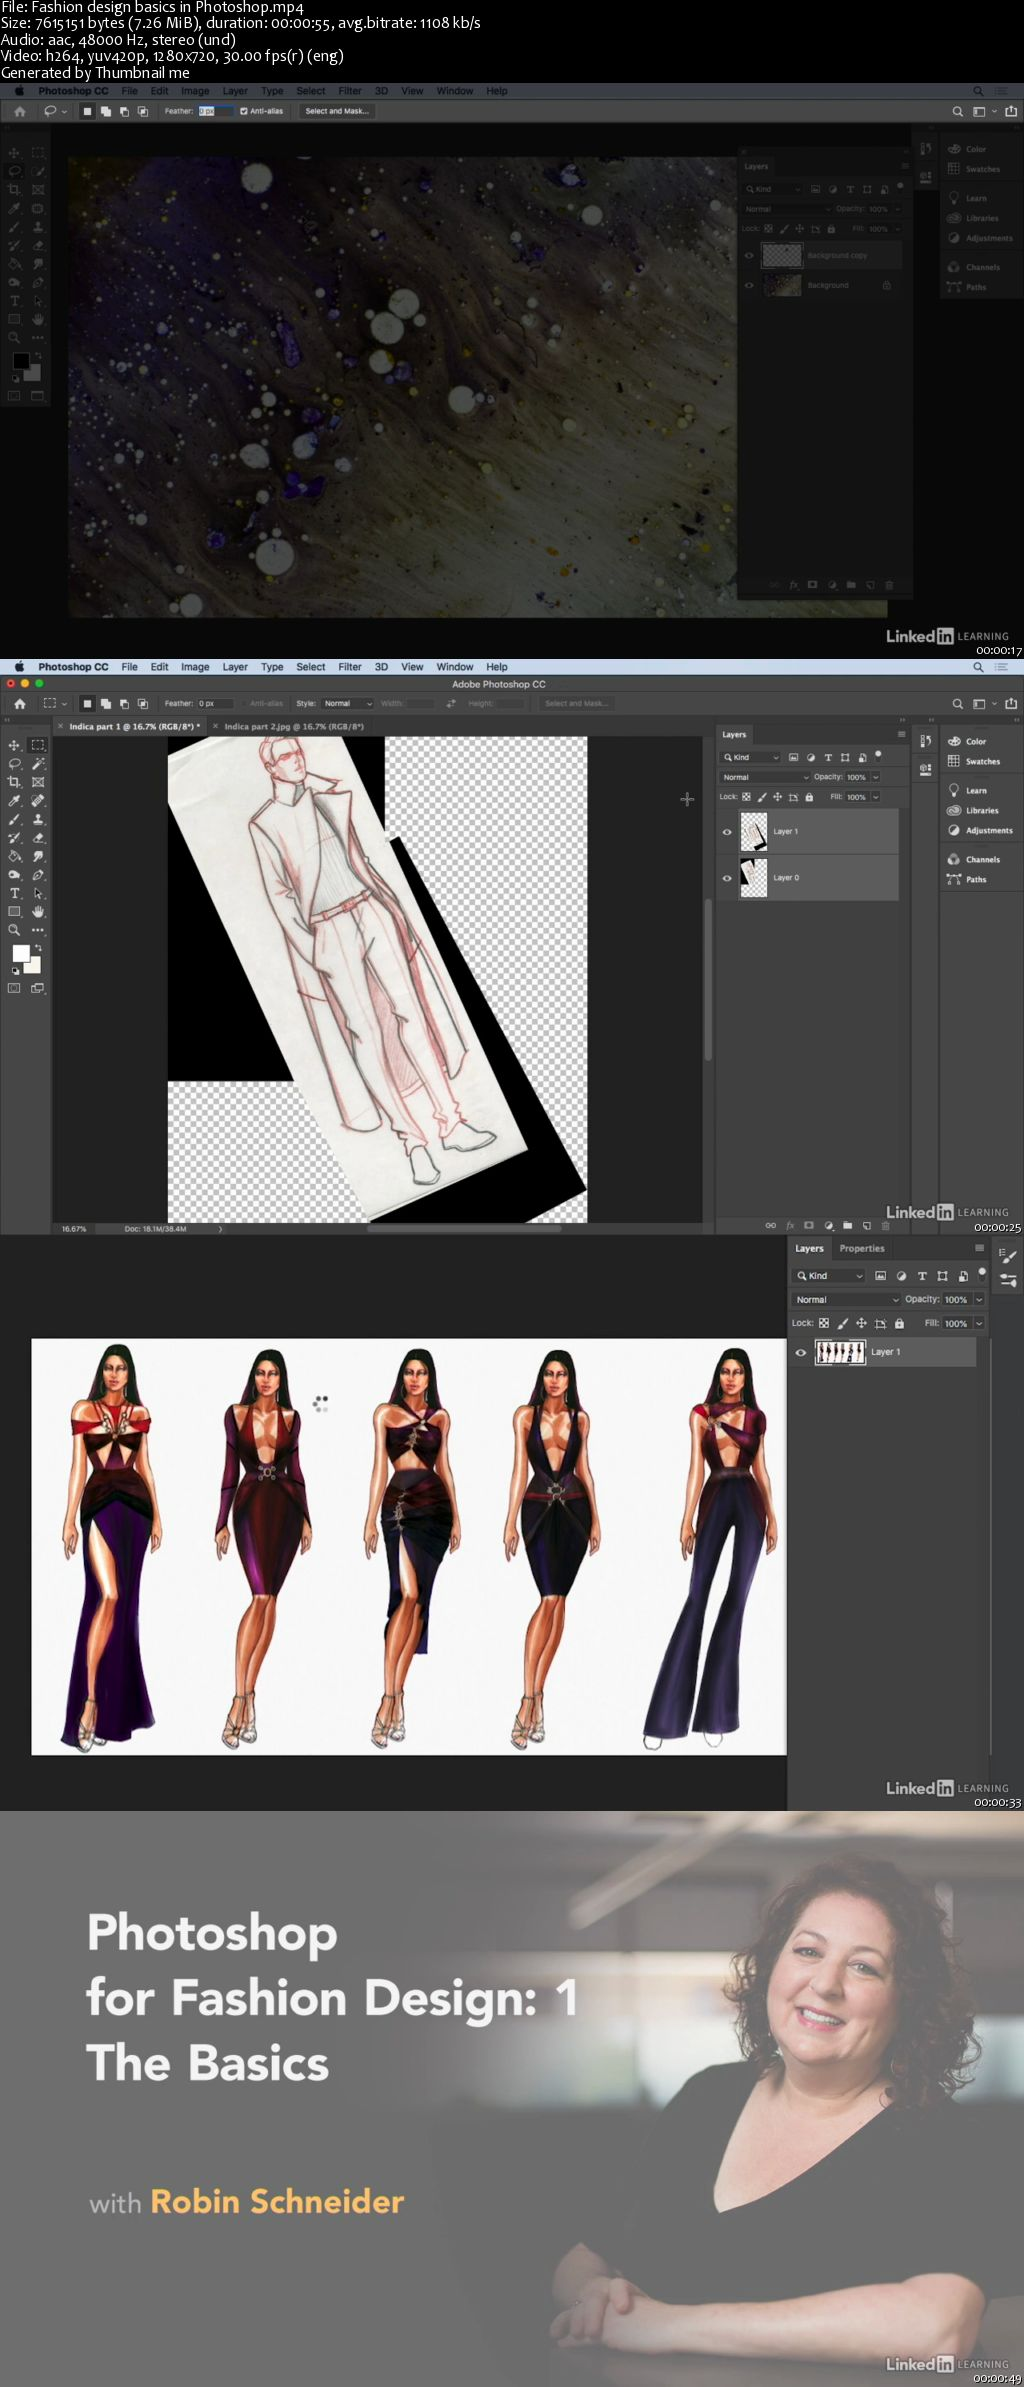 Download Photoshop For Fashion Design 1 The Basics Softarchive